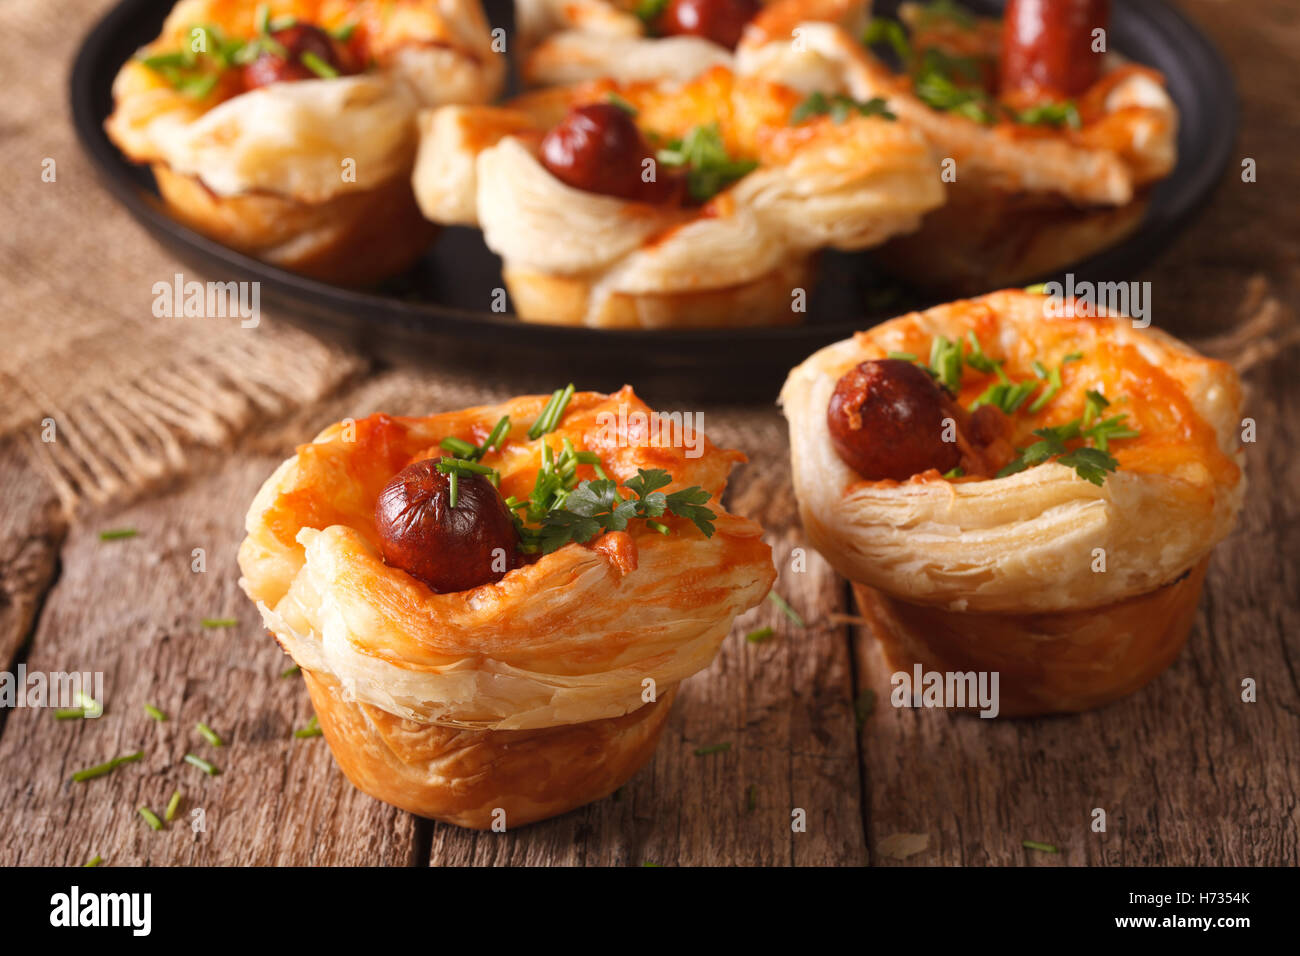 buns of puff pastry with sausage and cheese close-up on the table. Horizontal - Stock Image